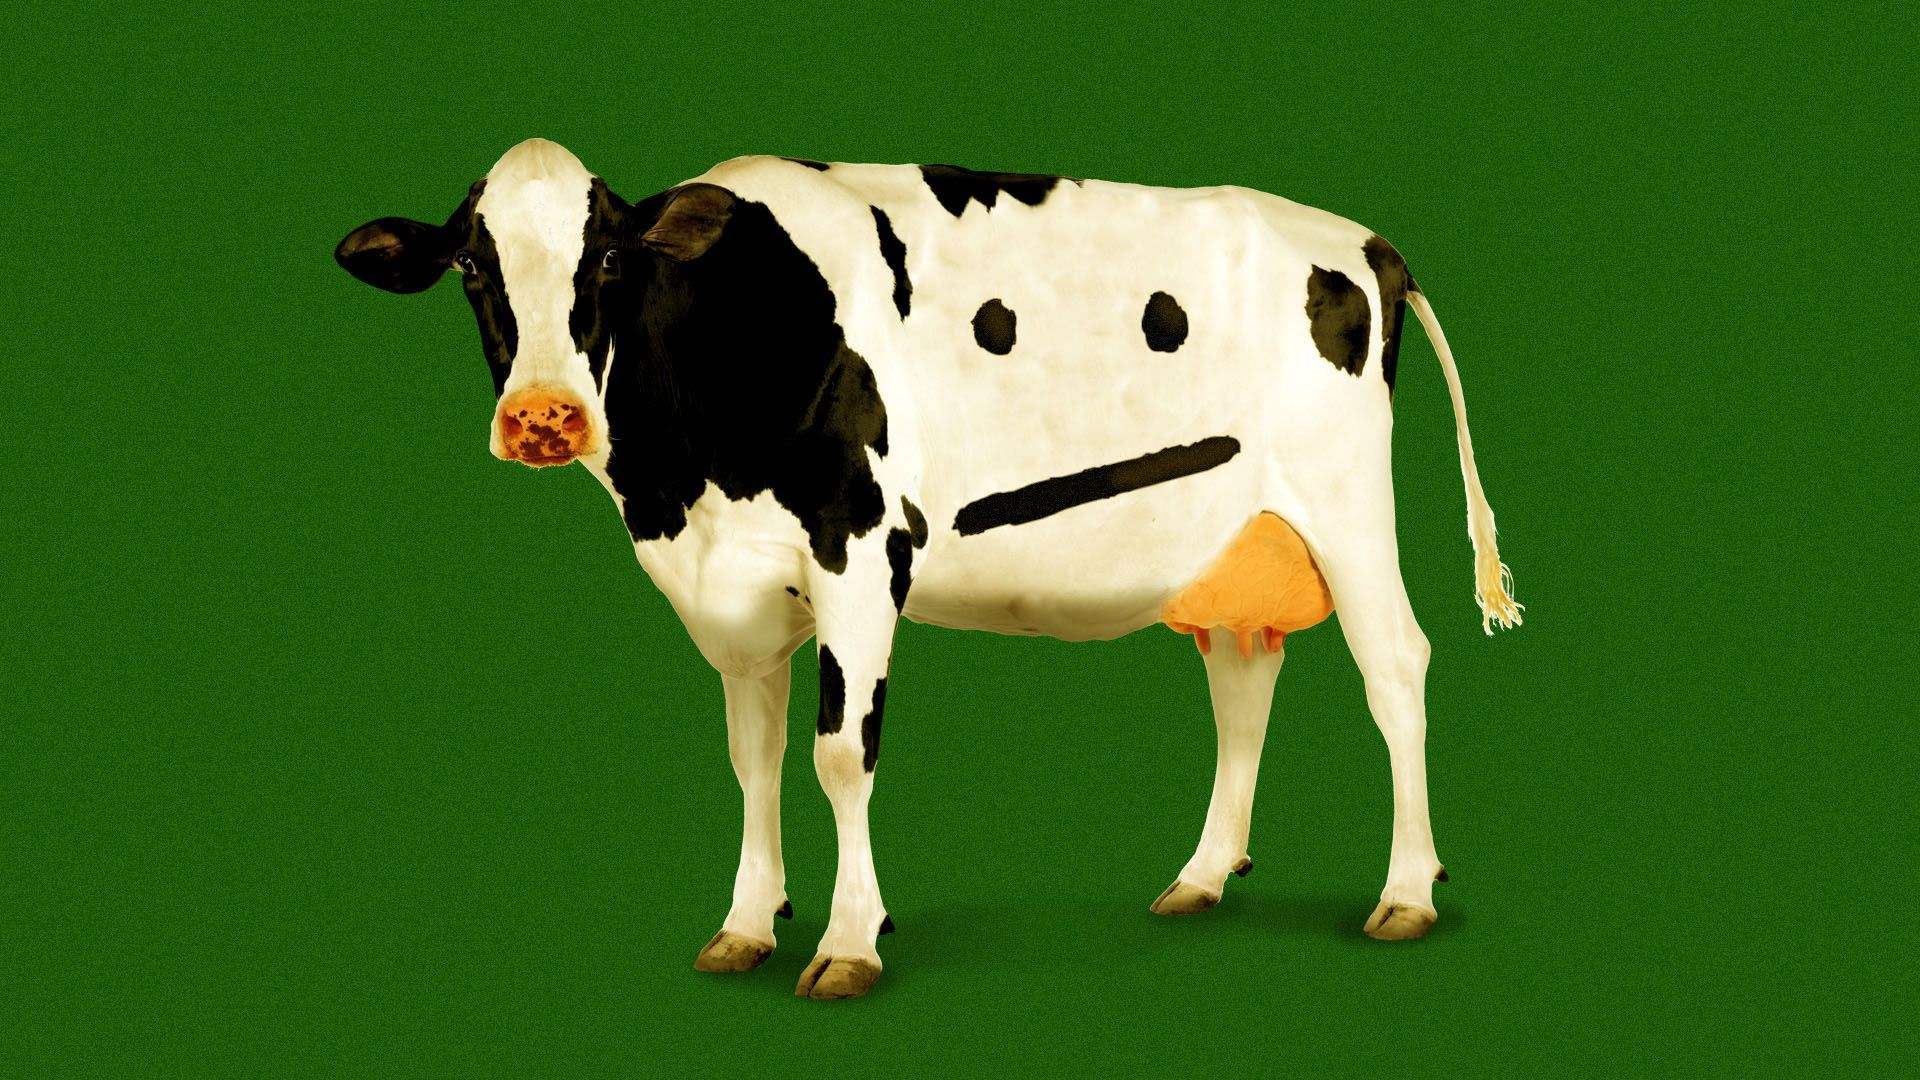 Illustration of a cow with markings in the shape of a neutral face